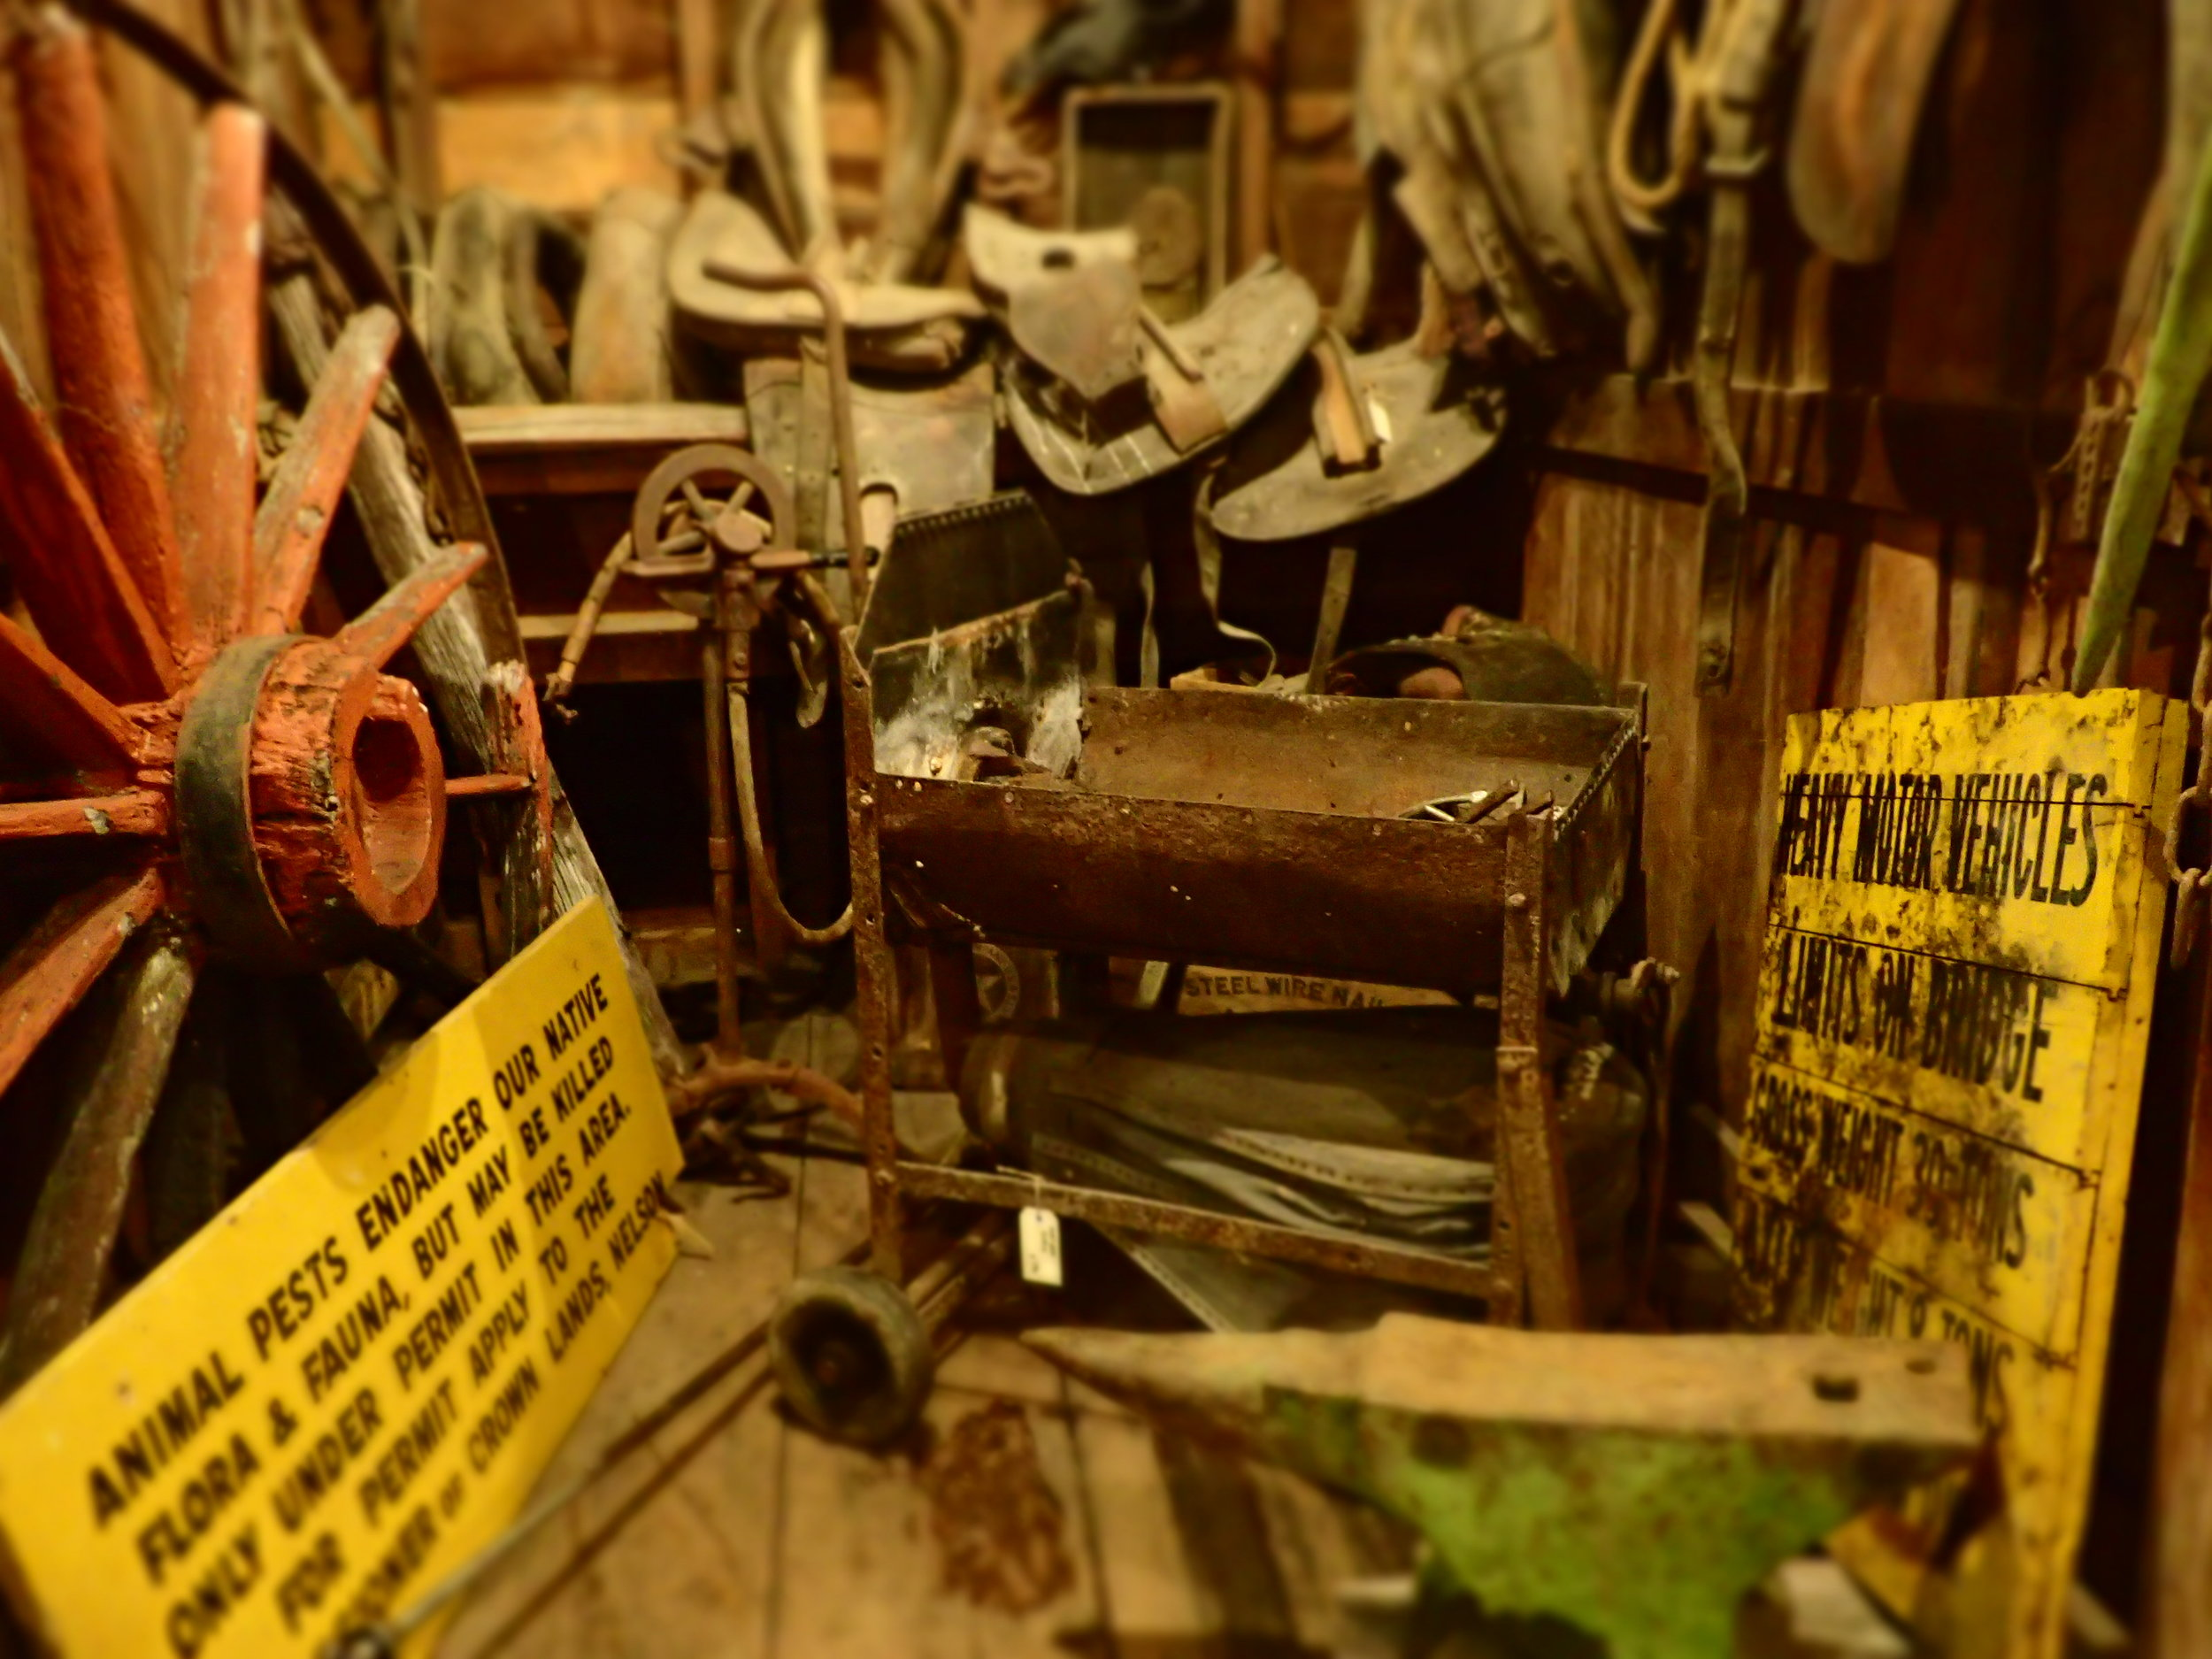 Raw and unrestored blacksmith's tools & horse cart gear in the horse box, hand operated forge and anvil.